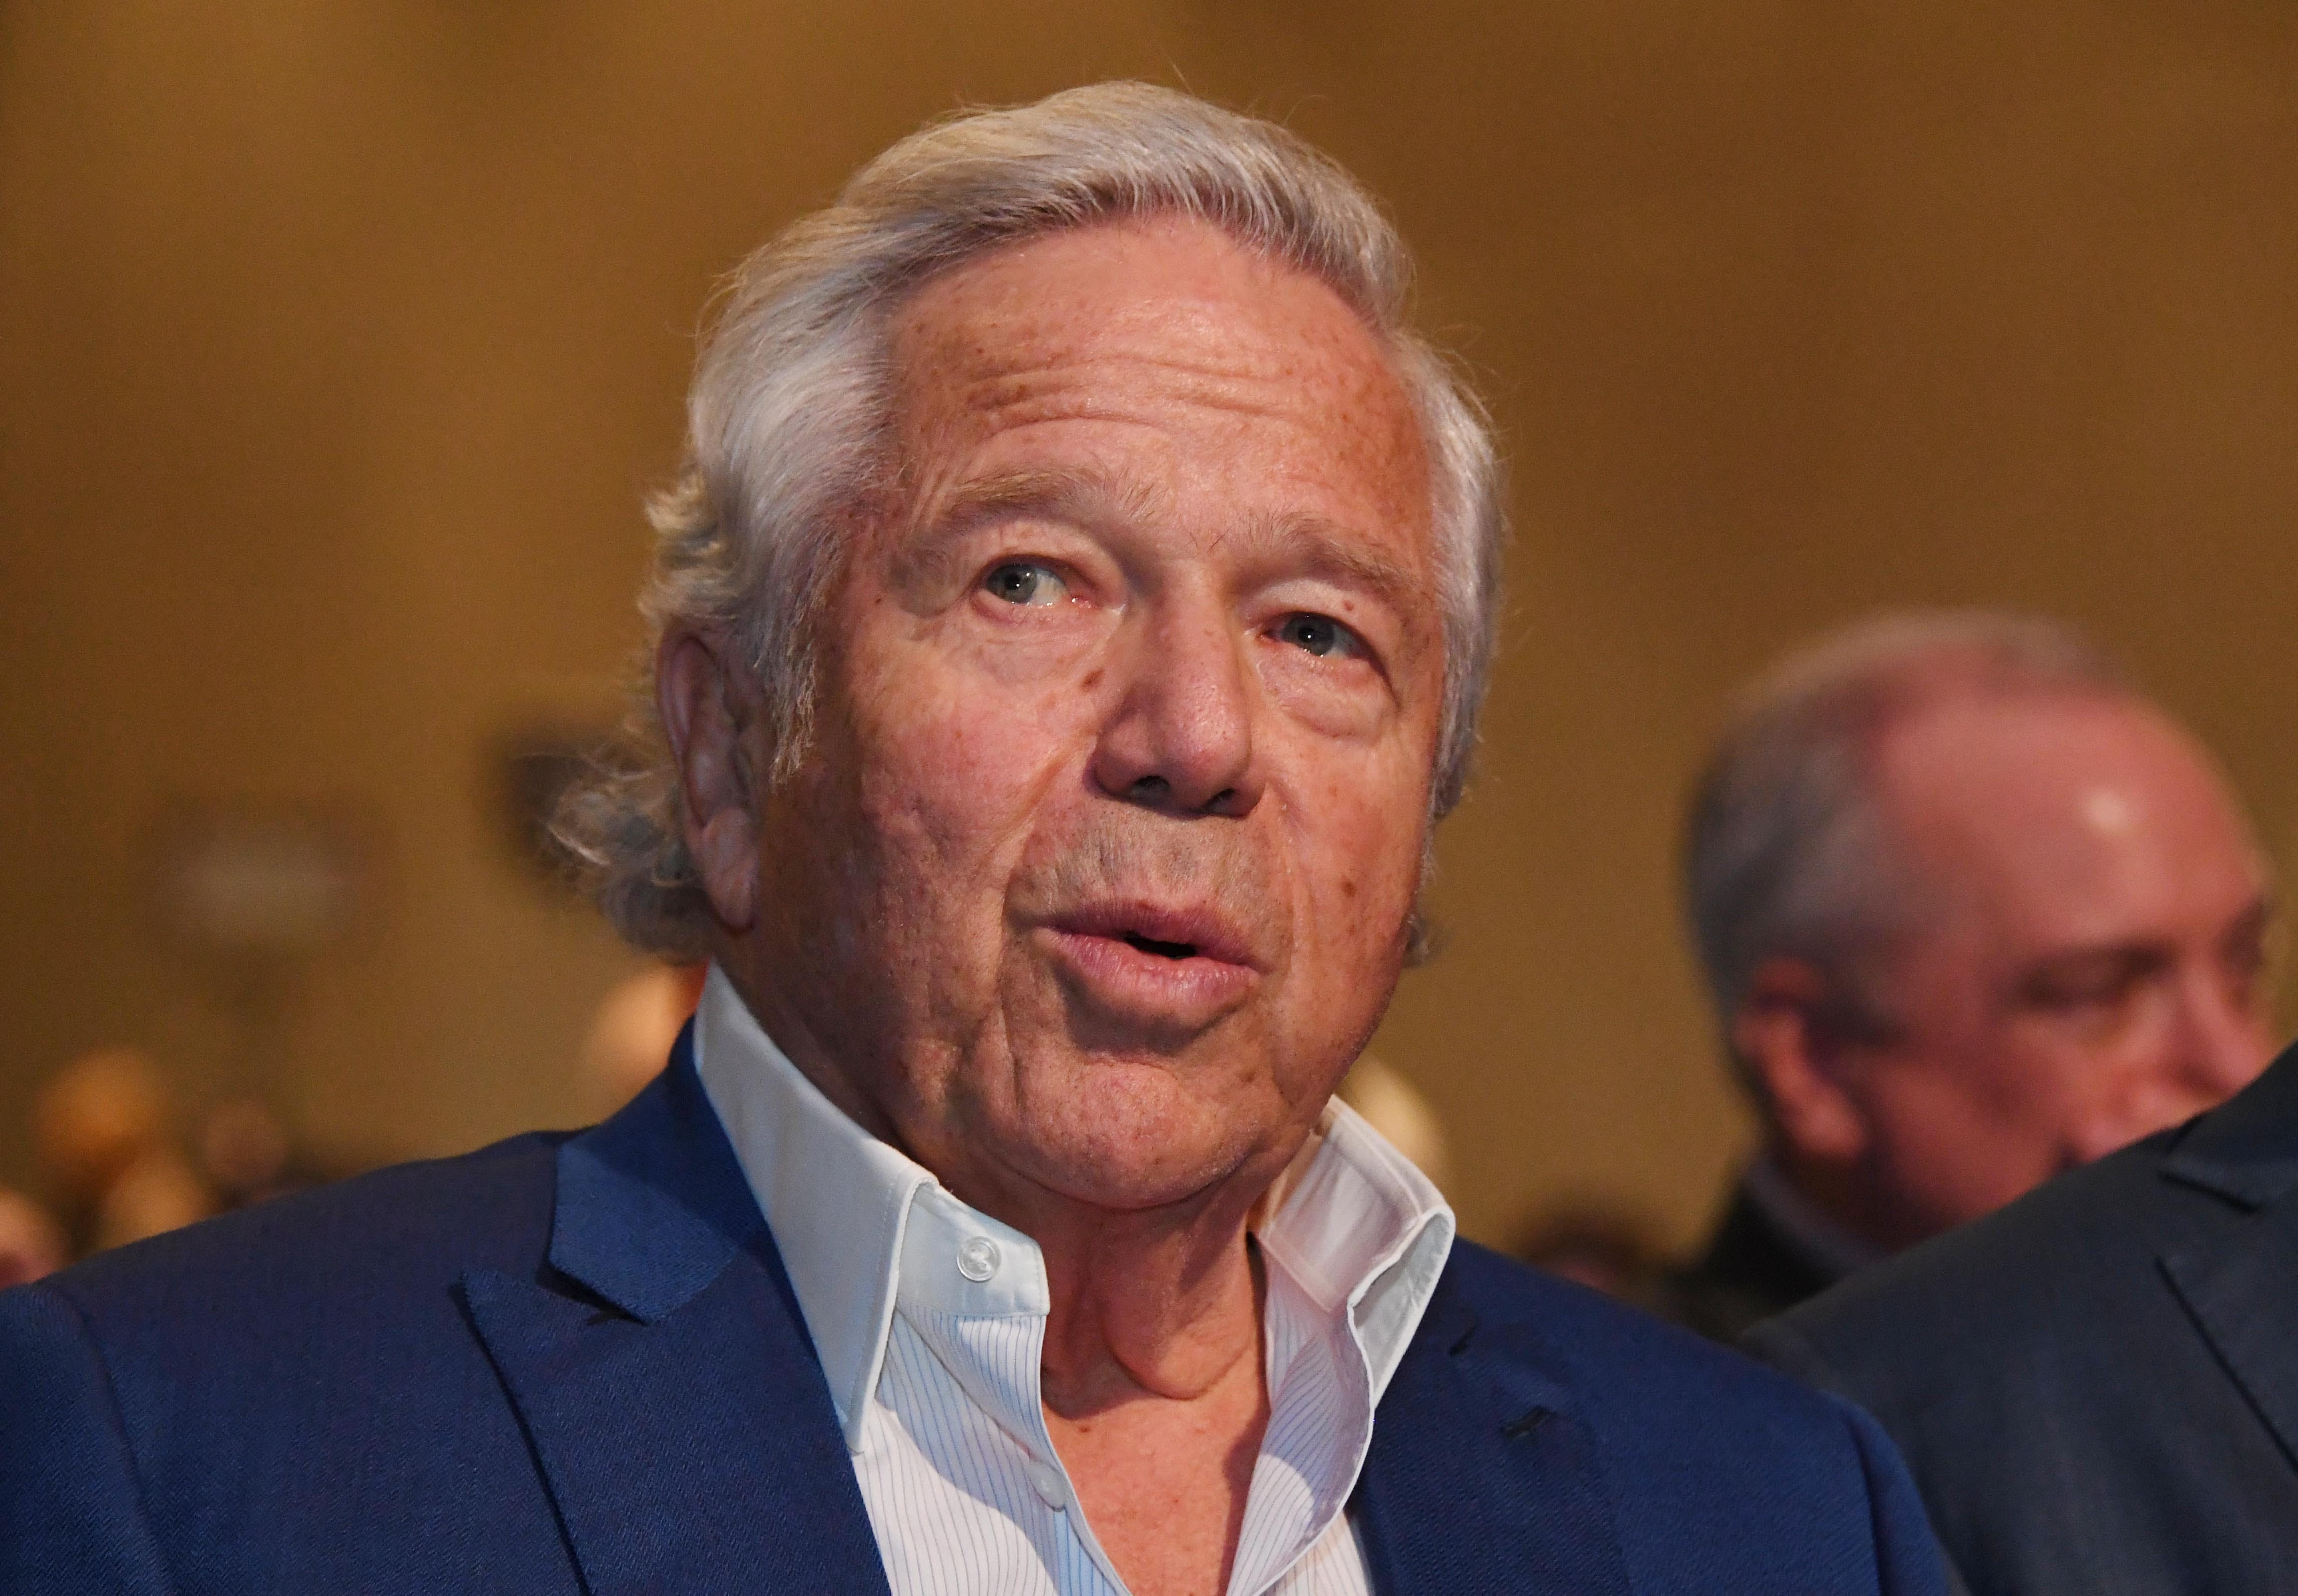 Robert Kraft trial indefinitely postponed while video suppression ruling is appealed